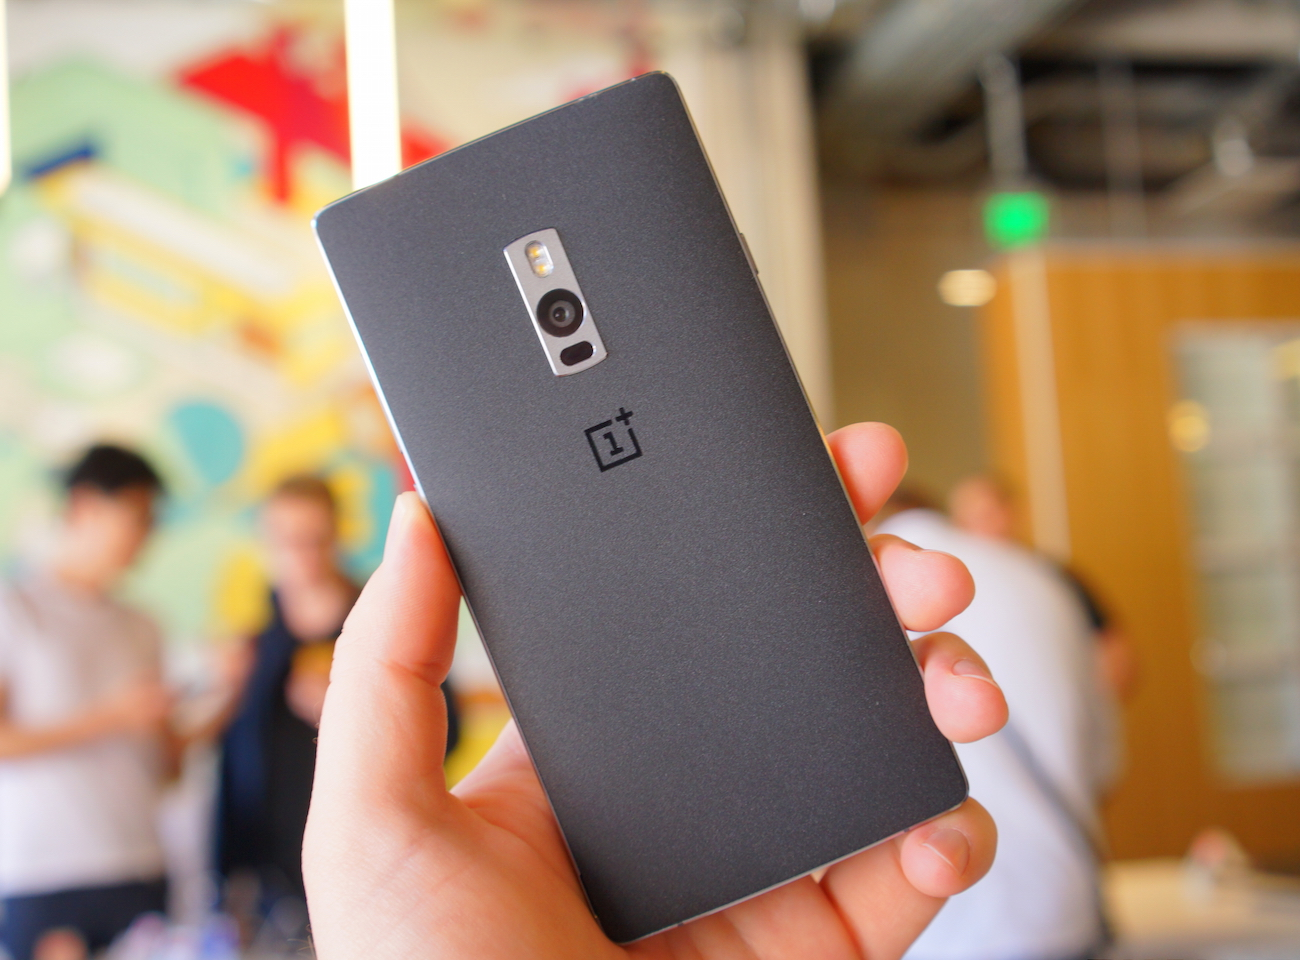 OnePlus 2 – With 5.5″ Full HD Display and 13MP Camera